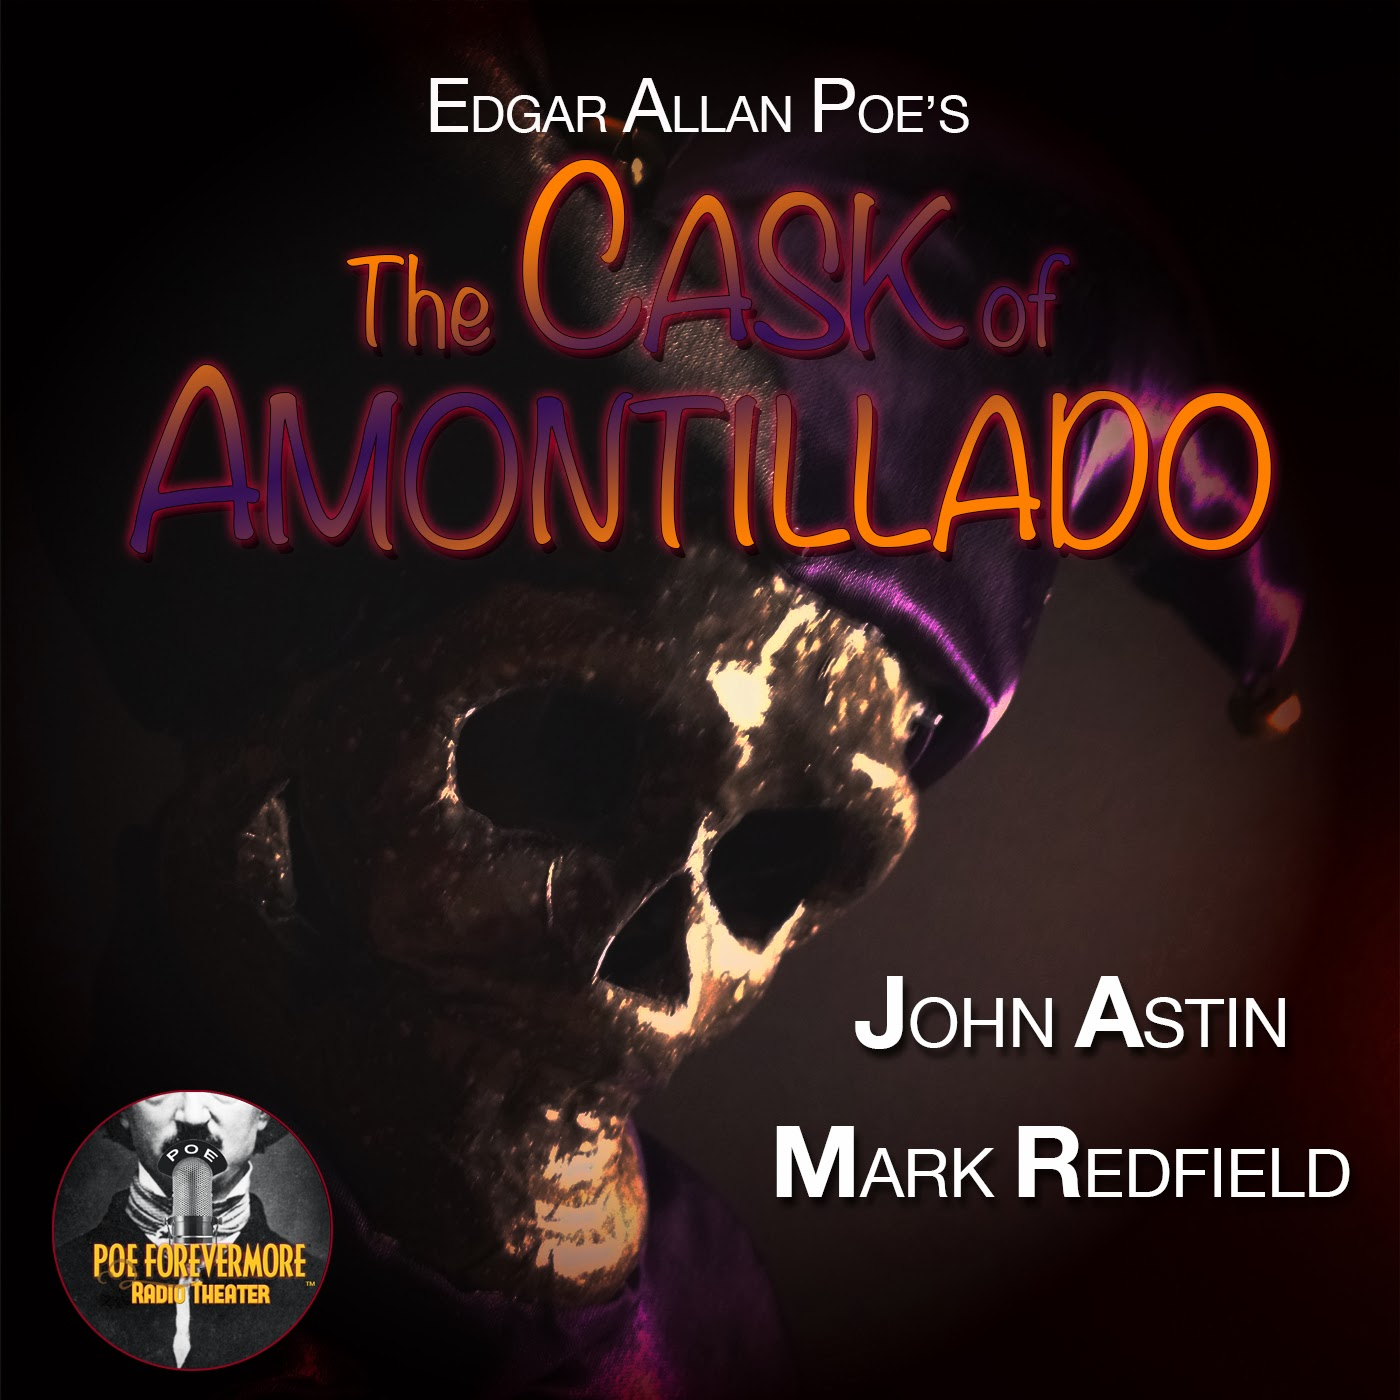 DECEMBER'S AUDIO PLAY: THE CASK OF AMONTILLADO